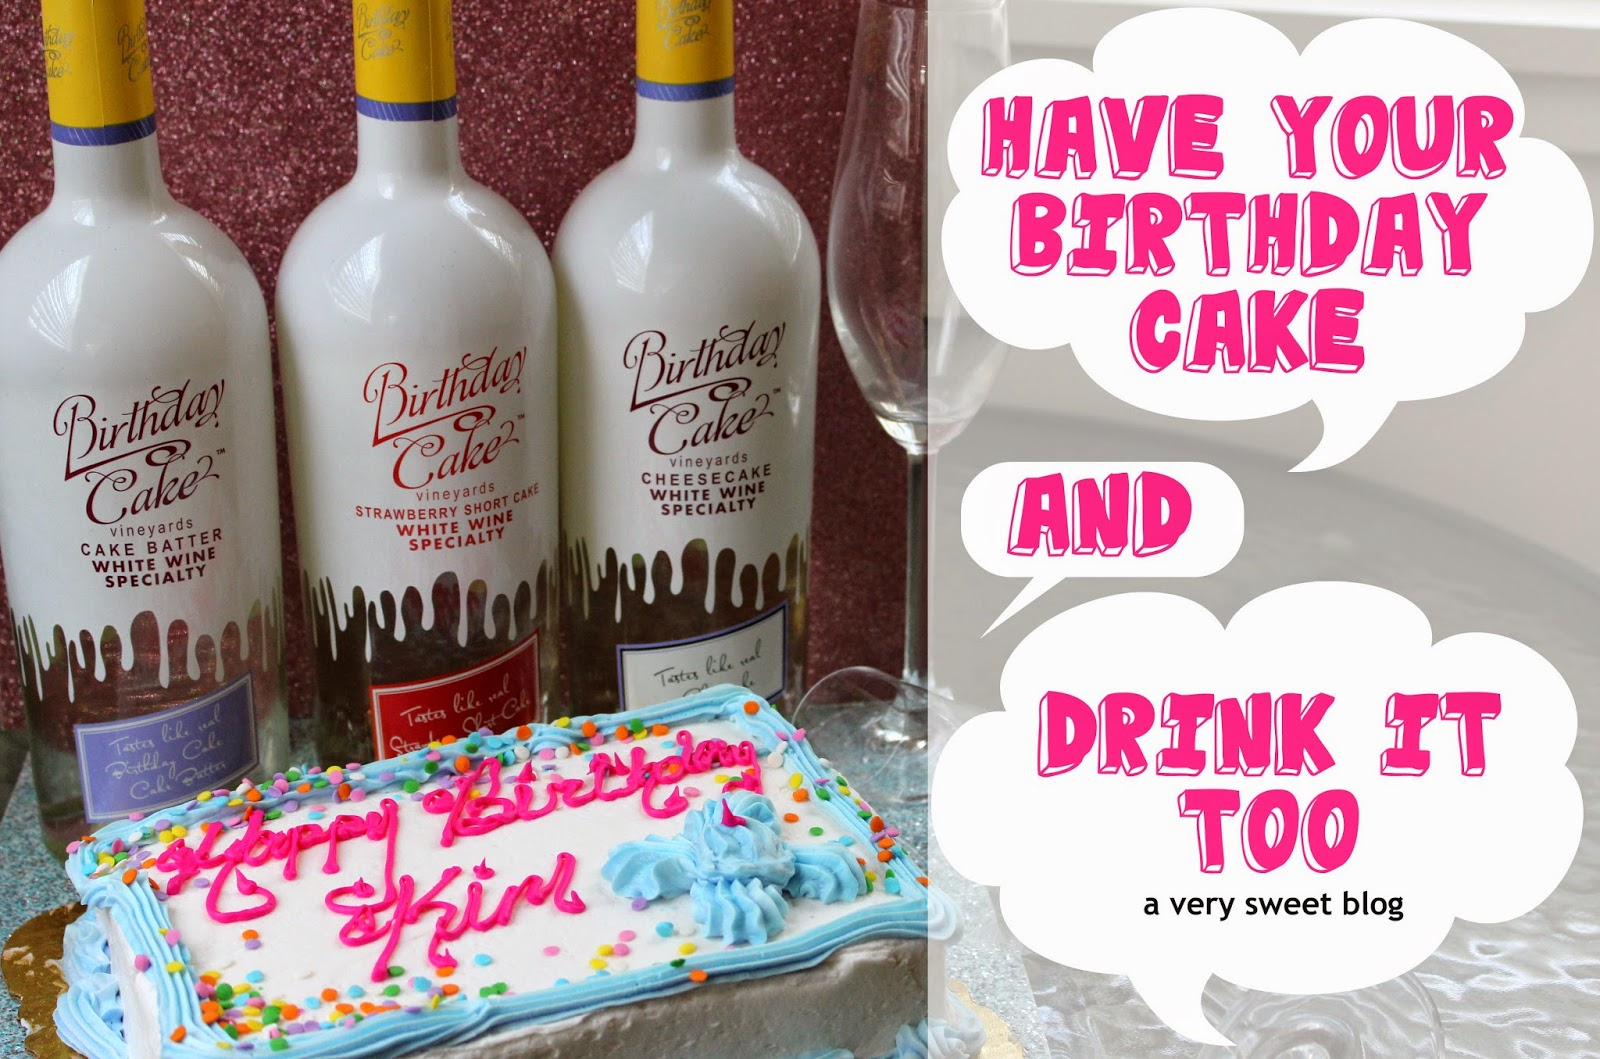 Have Your Birthday Cake And Drink It Too A Very Sweet Blog